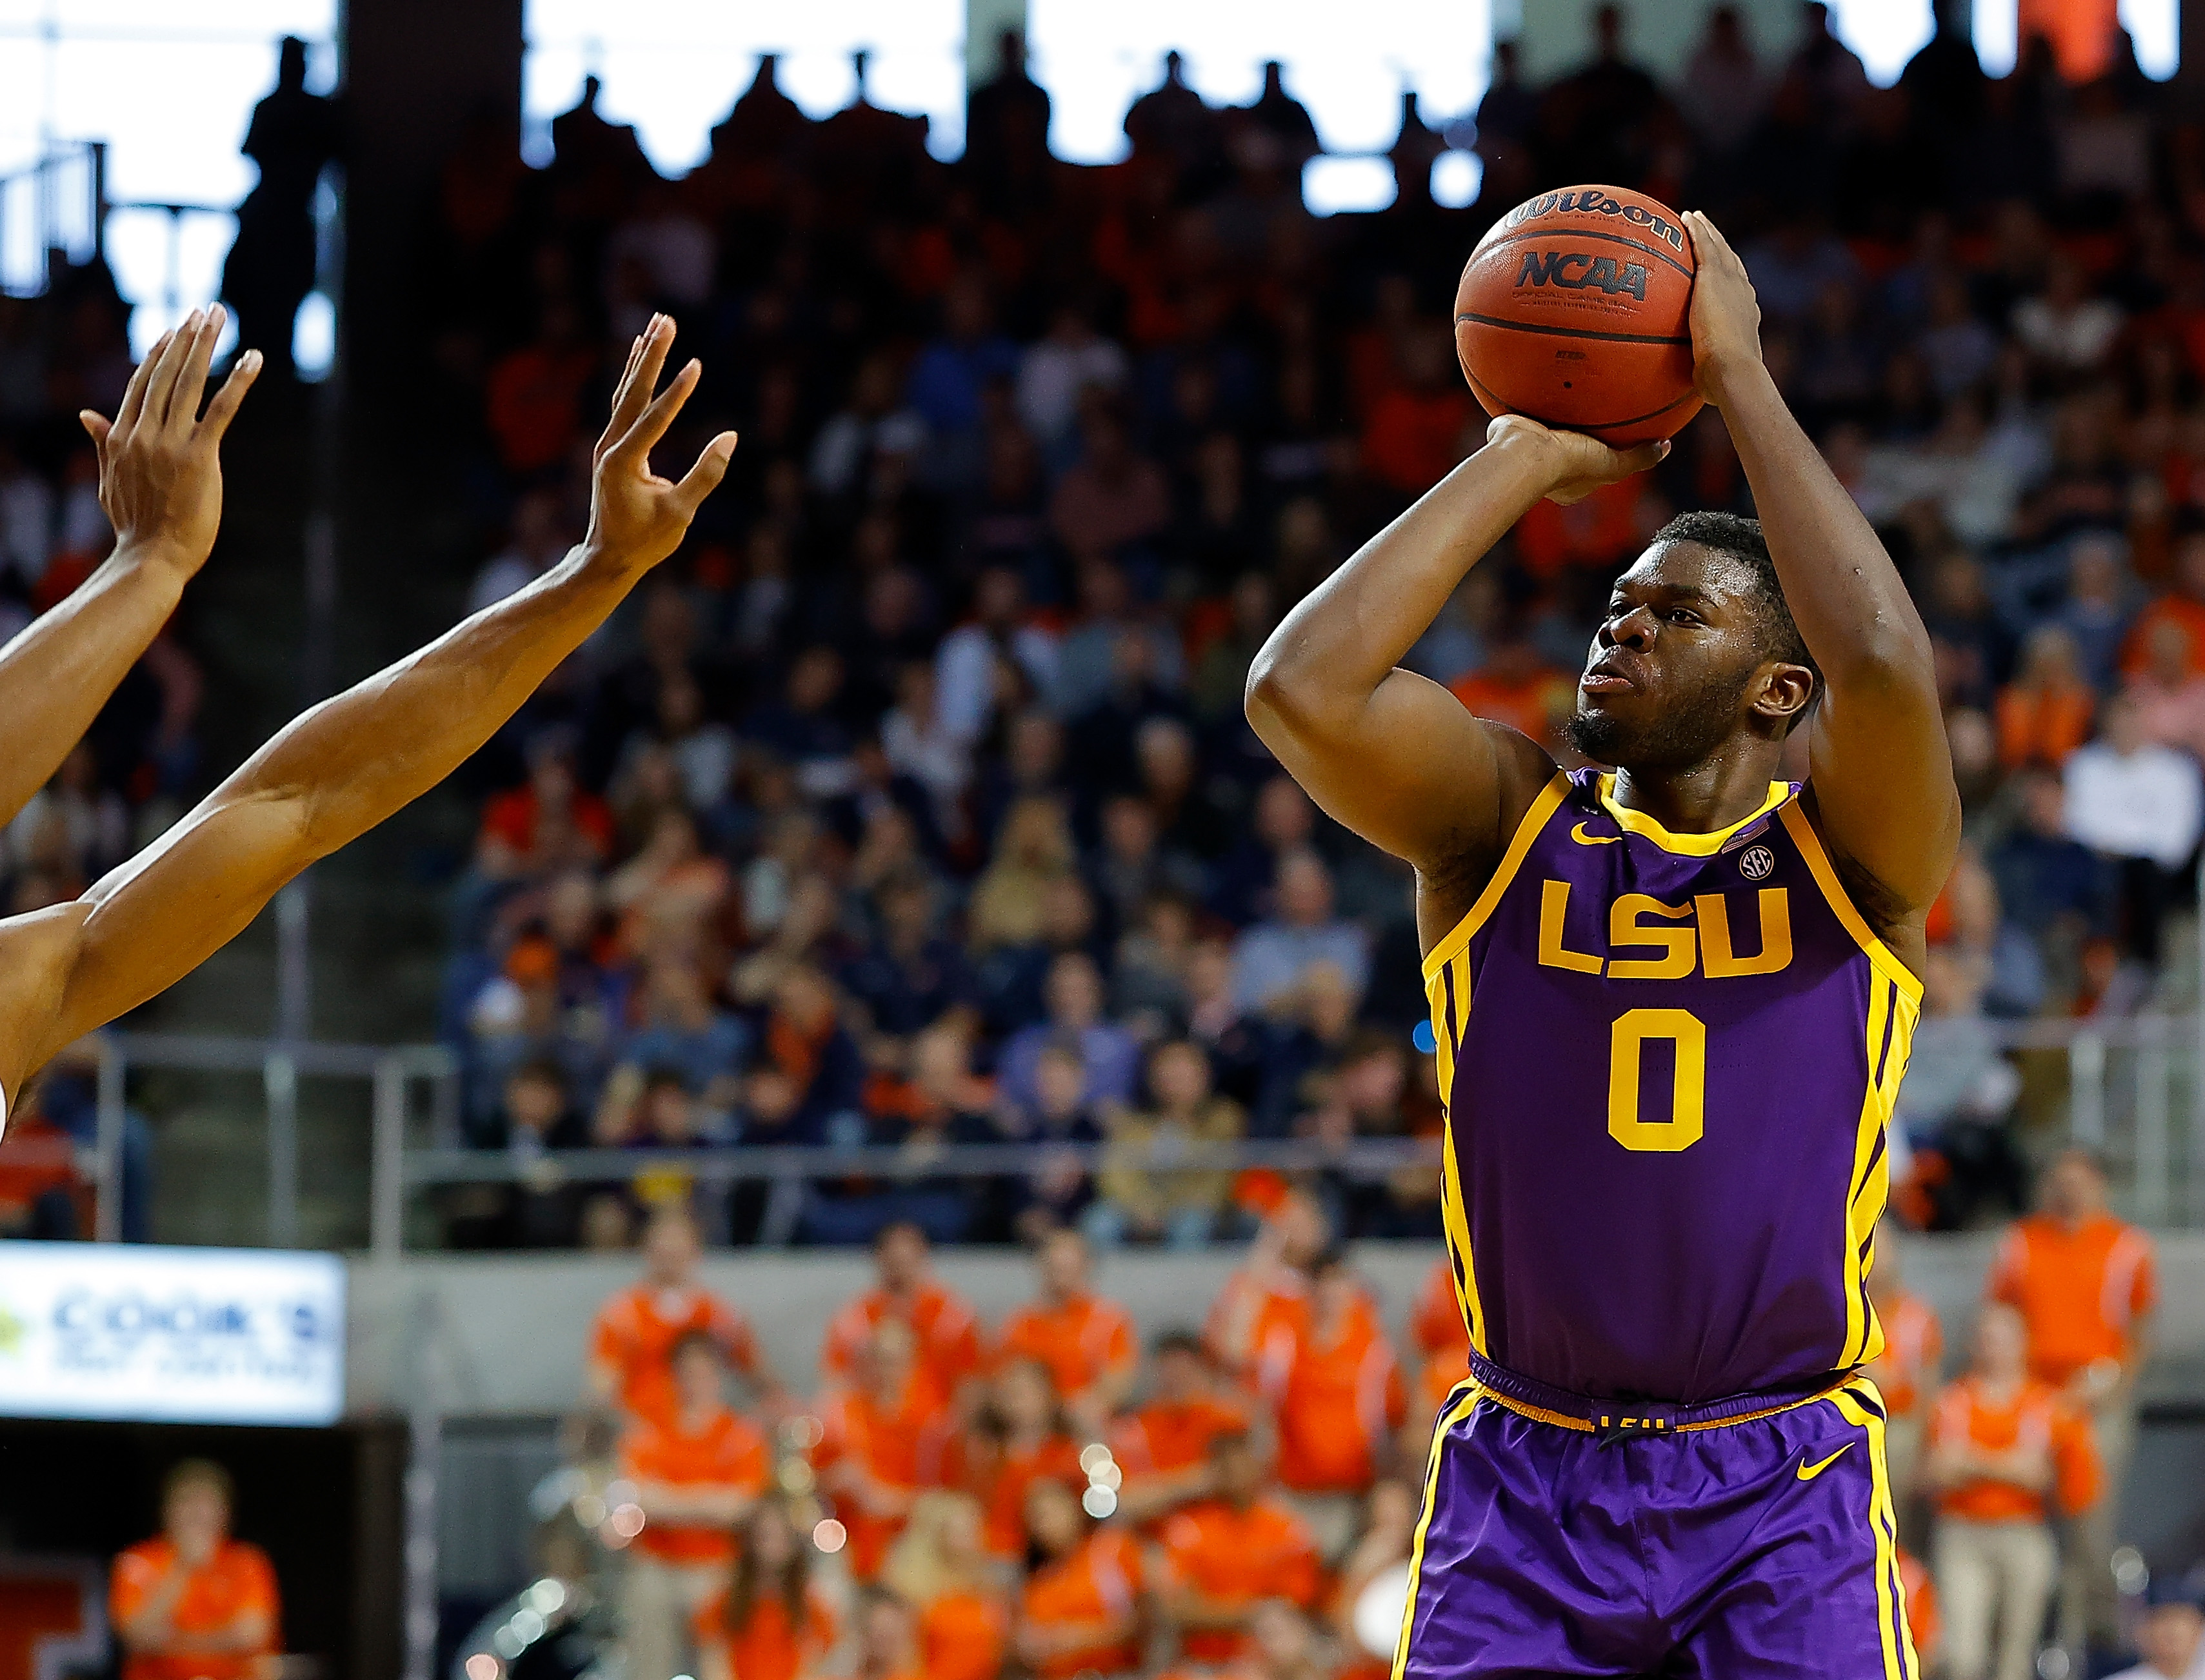 AUBURN, ALABAMA - FEBRUARY 08: Darius Days #0 of the LSU Tigers shoots a three-point basket against the Auburn Tigers in the first half at Auburn Arena on February 08, 2020 in Auburn, Alabama.